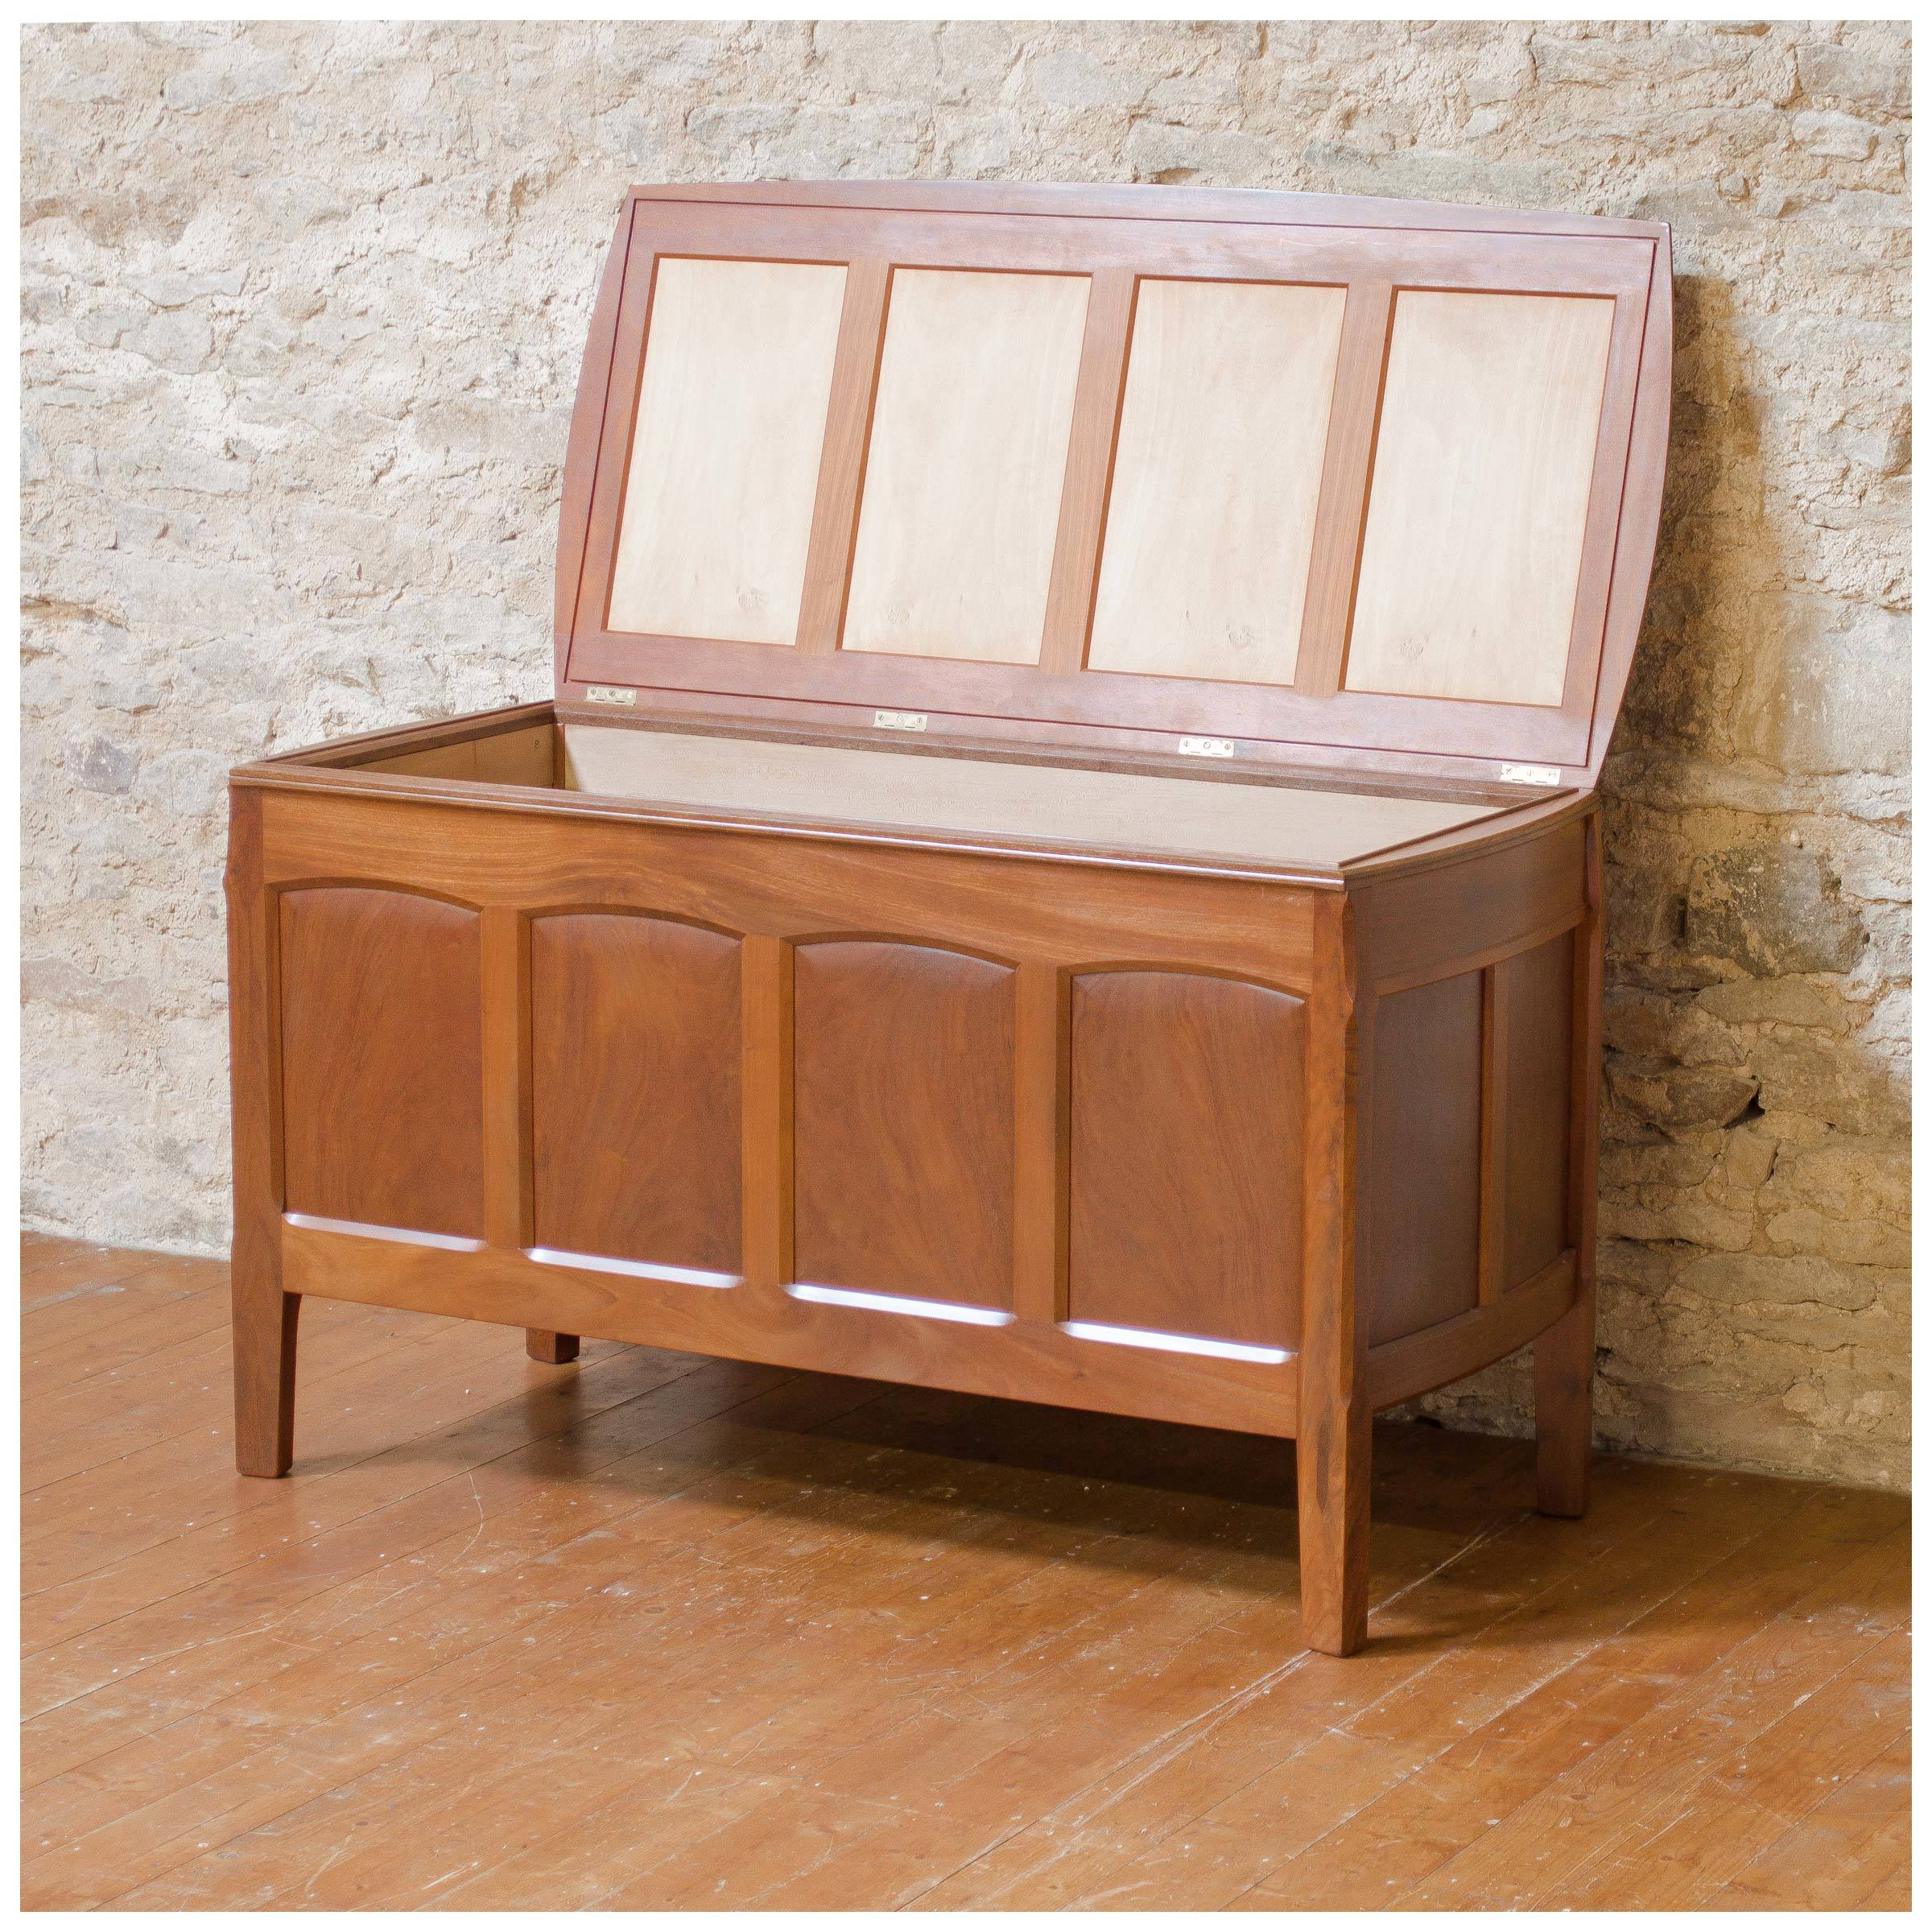 arts-and-crafts-cotswolds-school-walnut-chest-by-oliver-morel-b0020096p.jpg